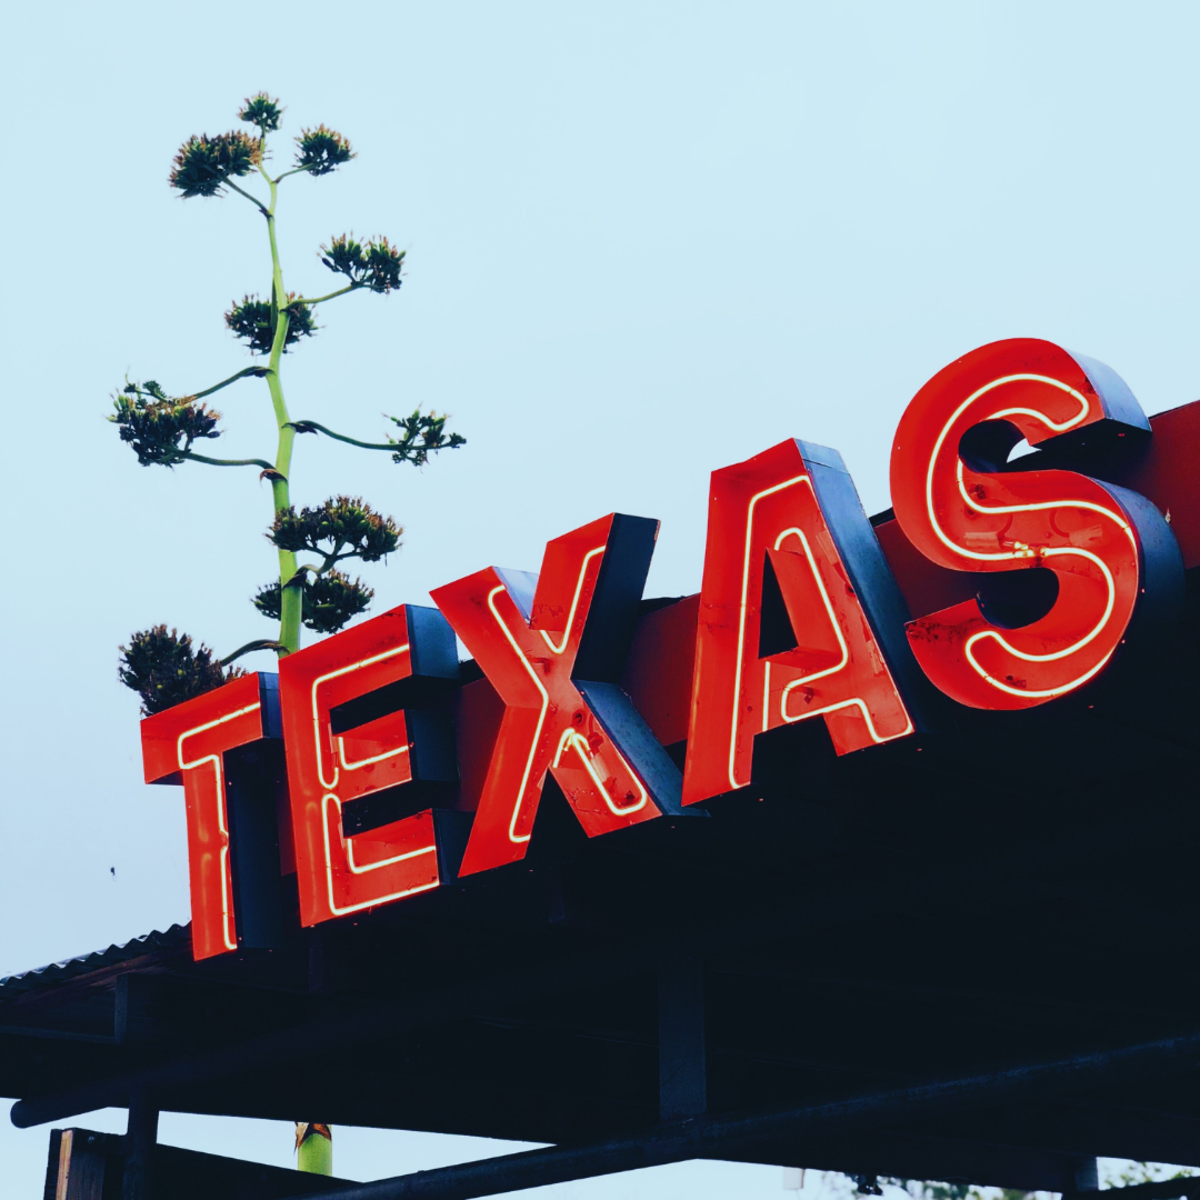 You may want to study this Texan way of speaking before traveling to the republic (er, state).